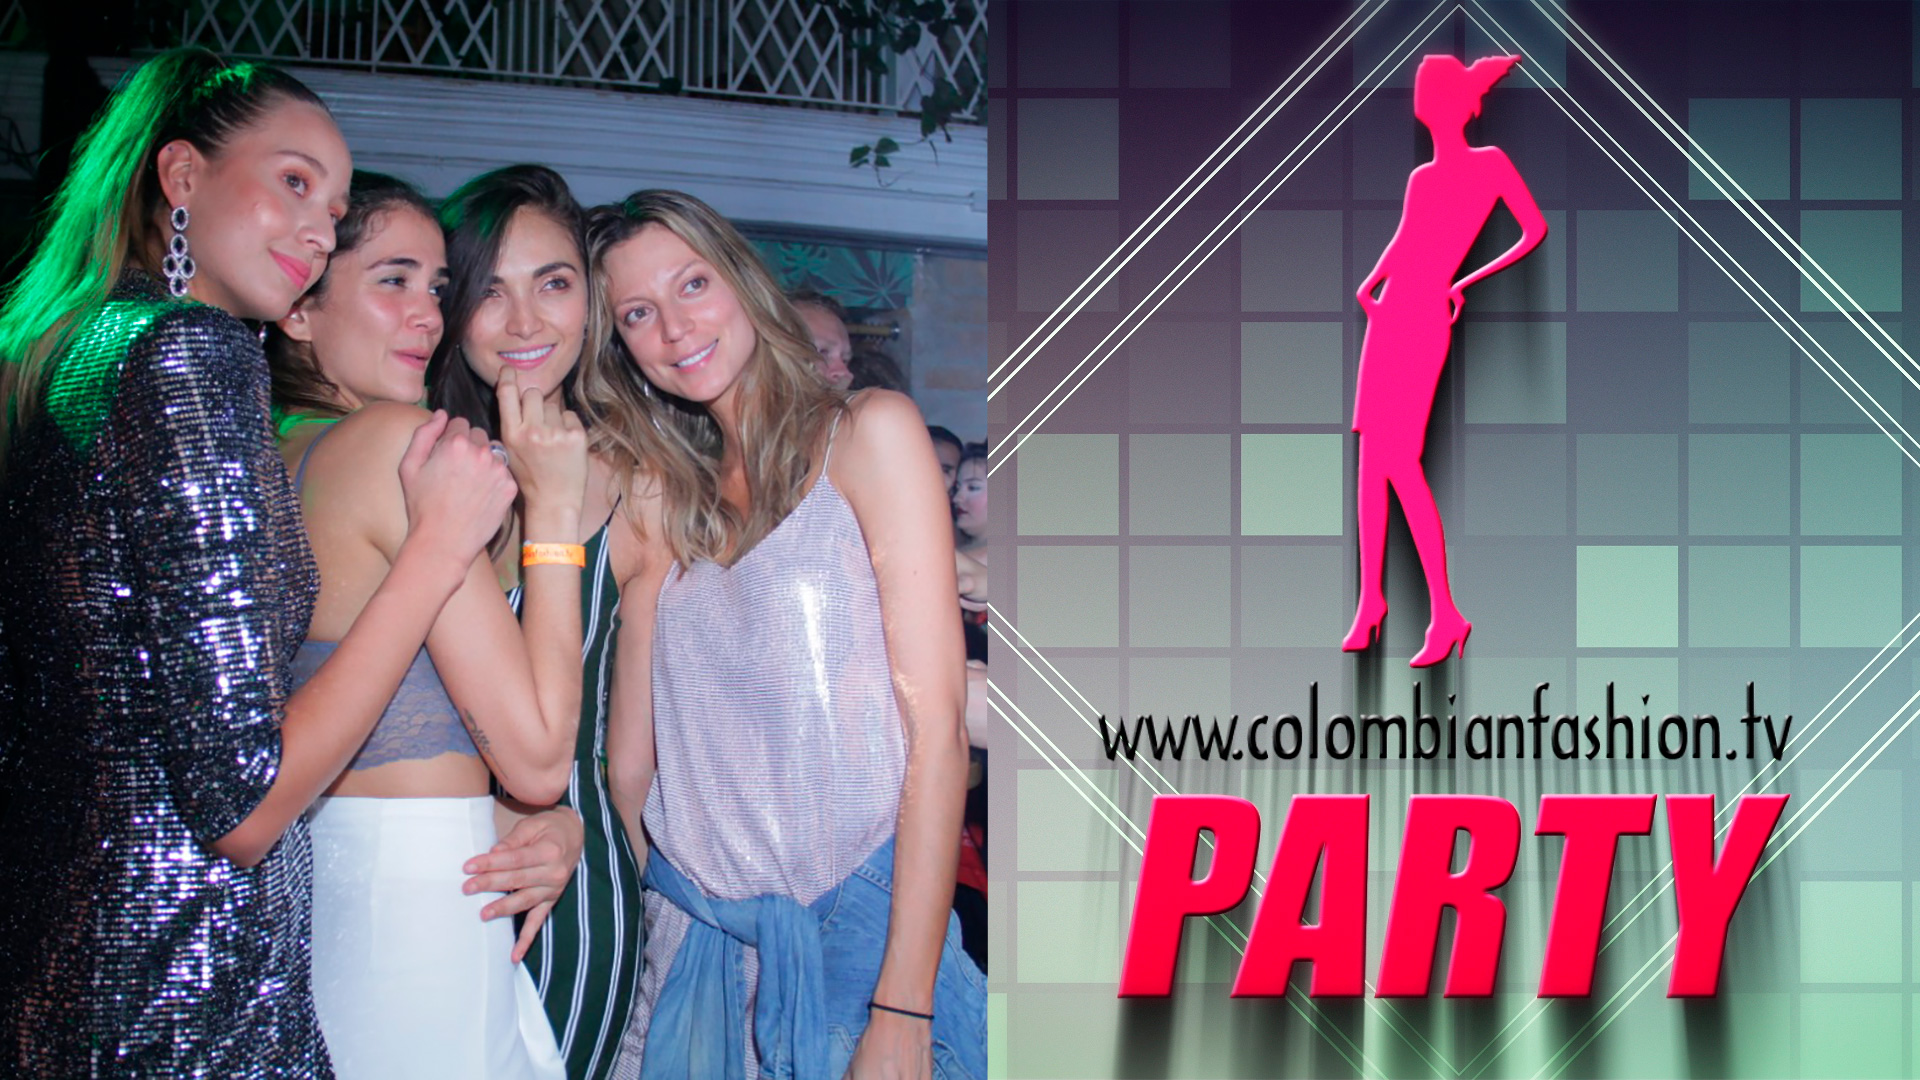 COLOMBIANFASHION PARTY